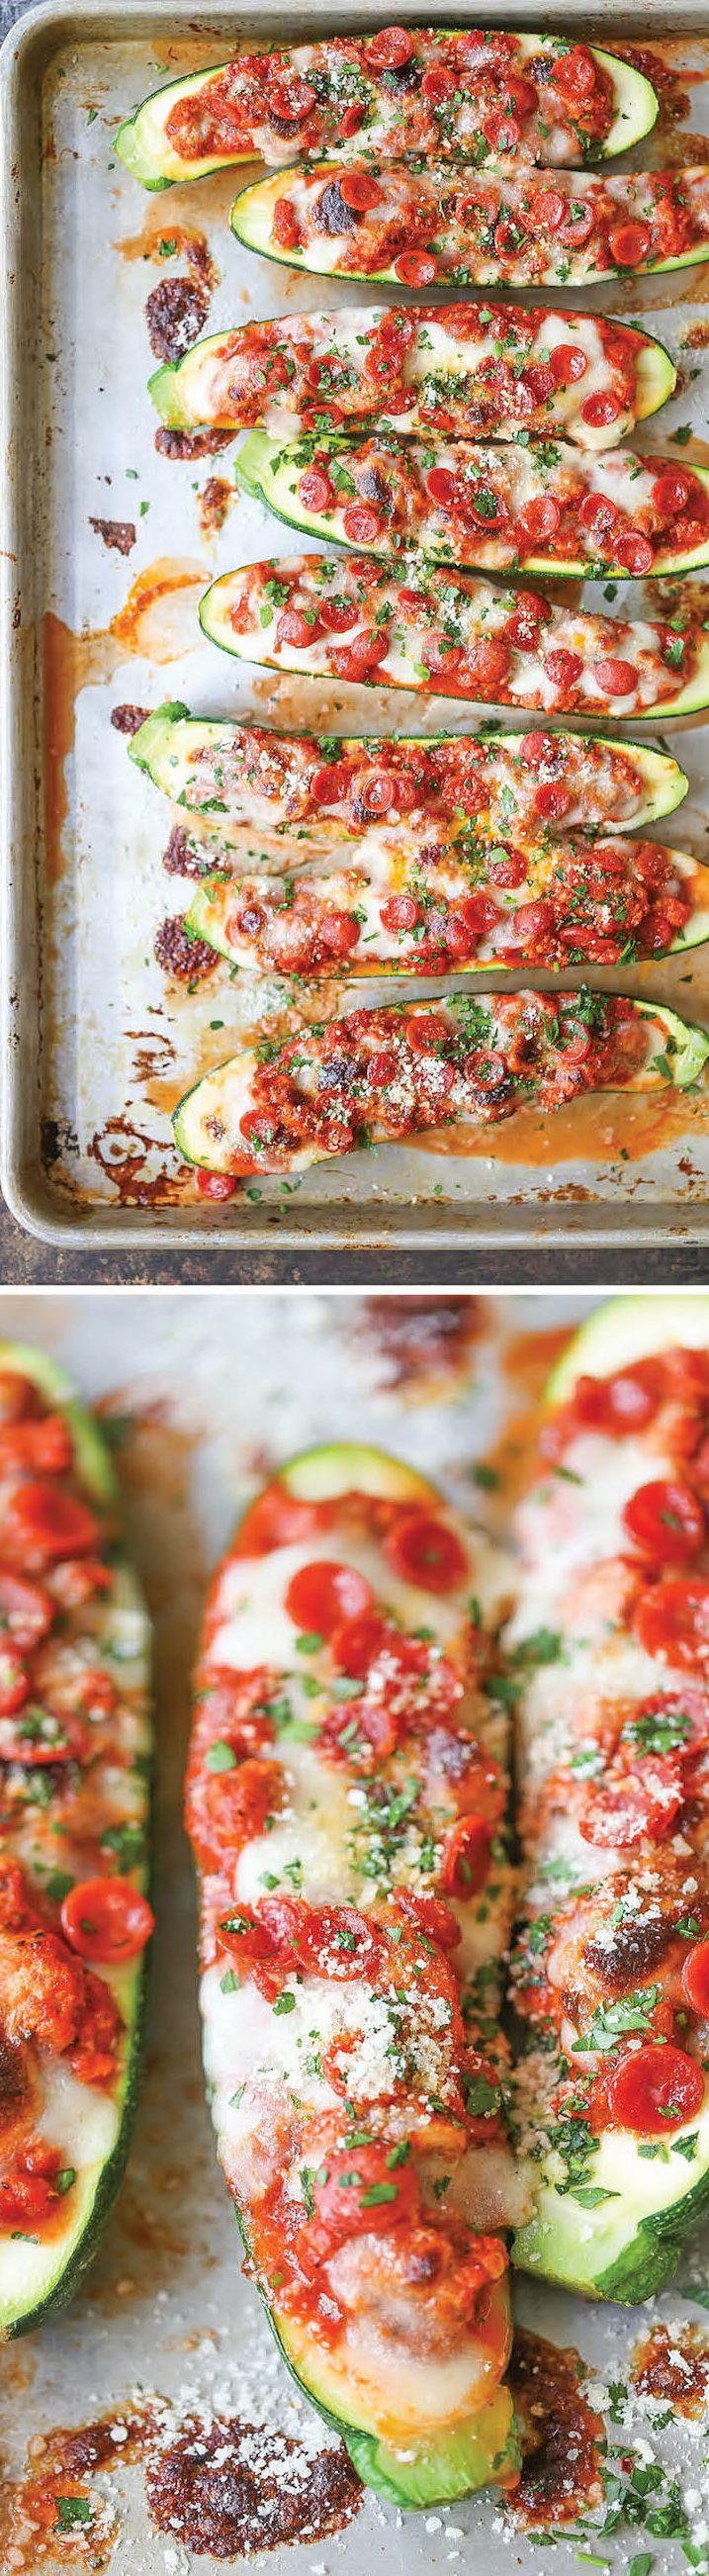 Pizza Stuffed Zucchini Boats. All the flavors of pizza neatly packed in healthy, nutritious zucchini boats! It's cheesy comfort without any of the guilt!